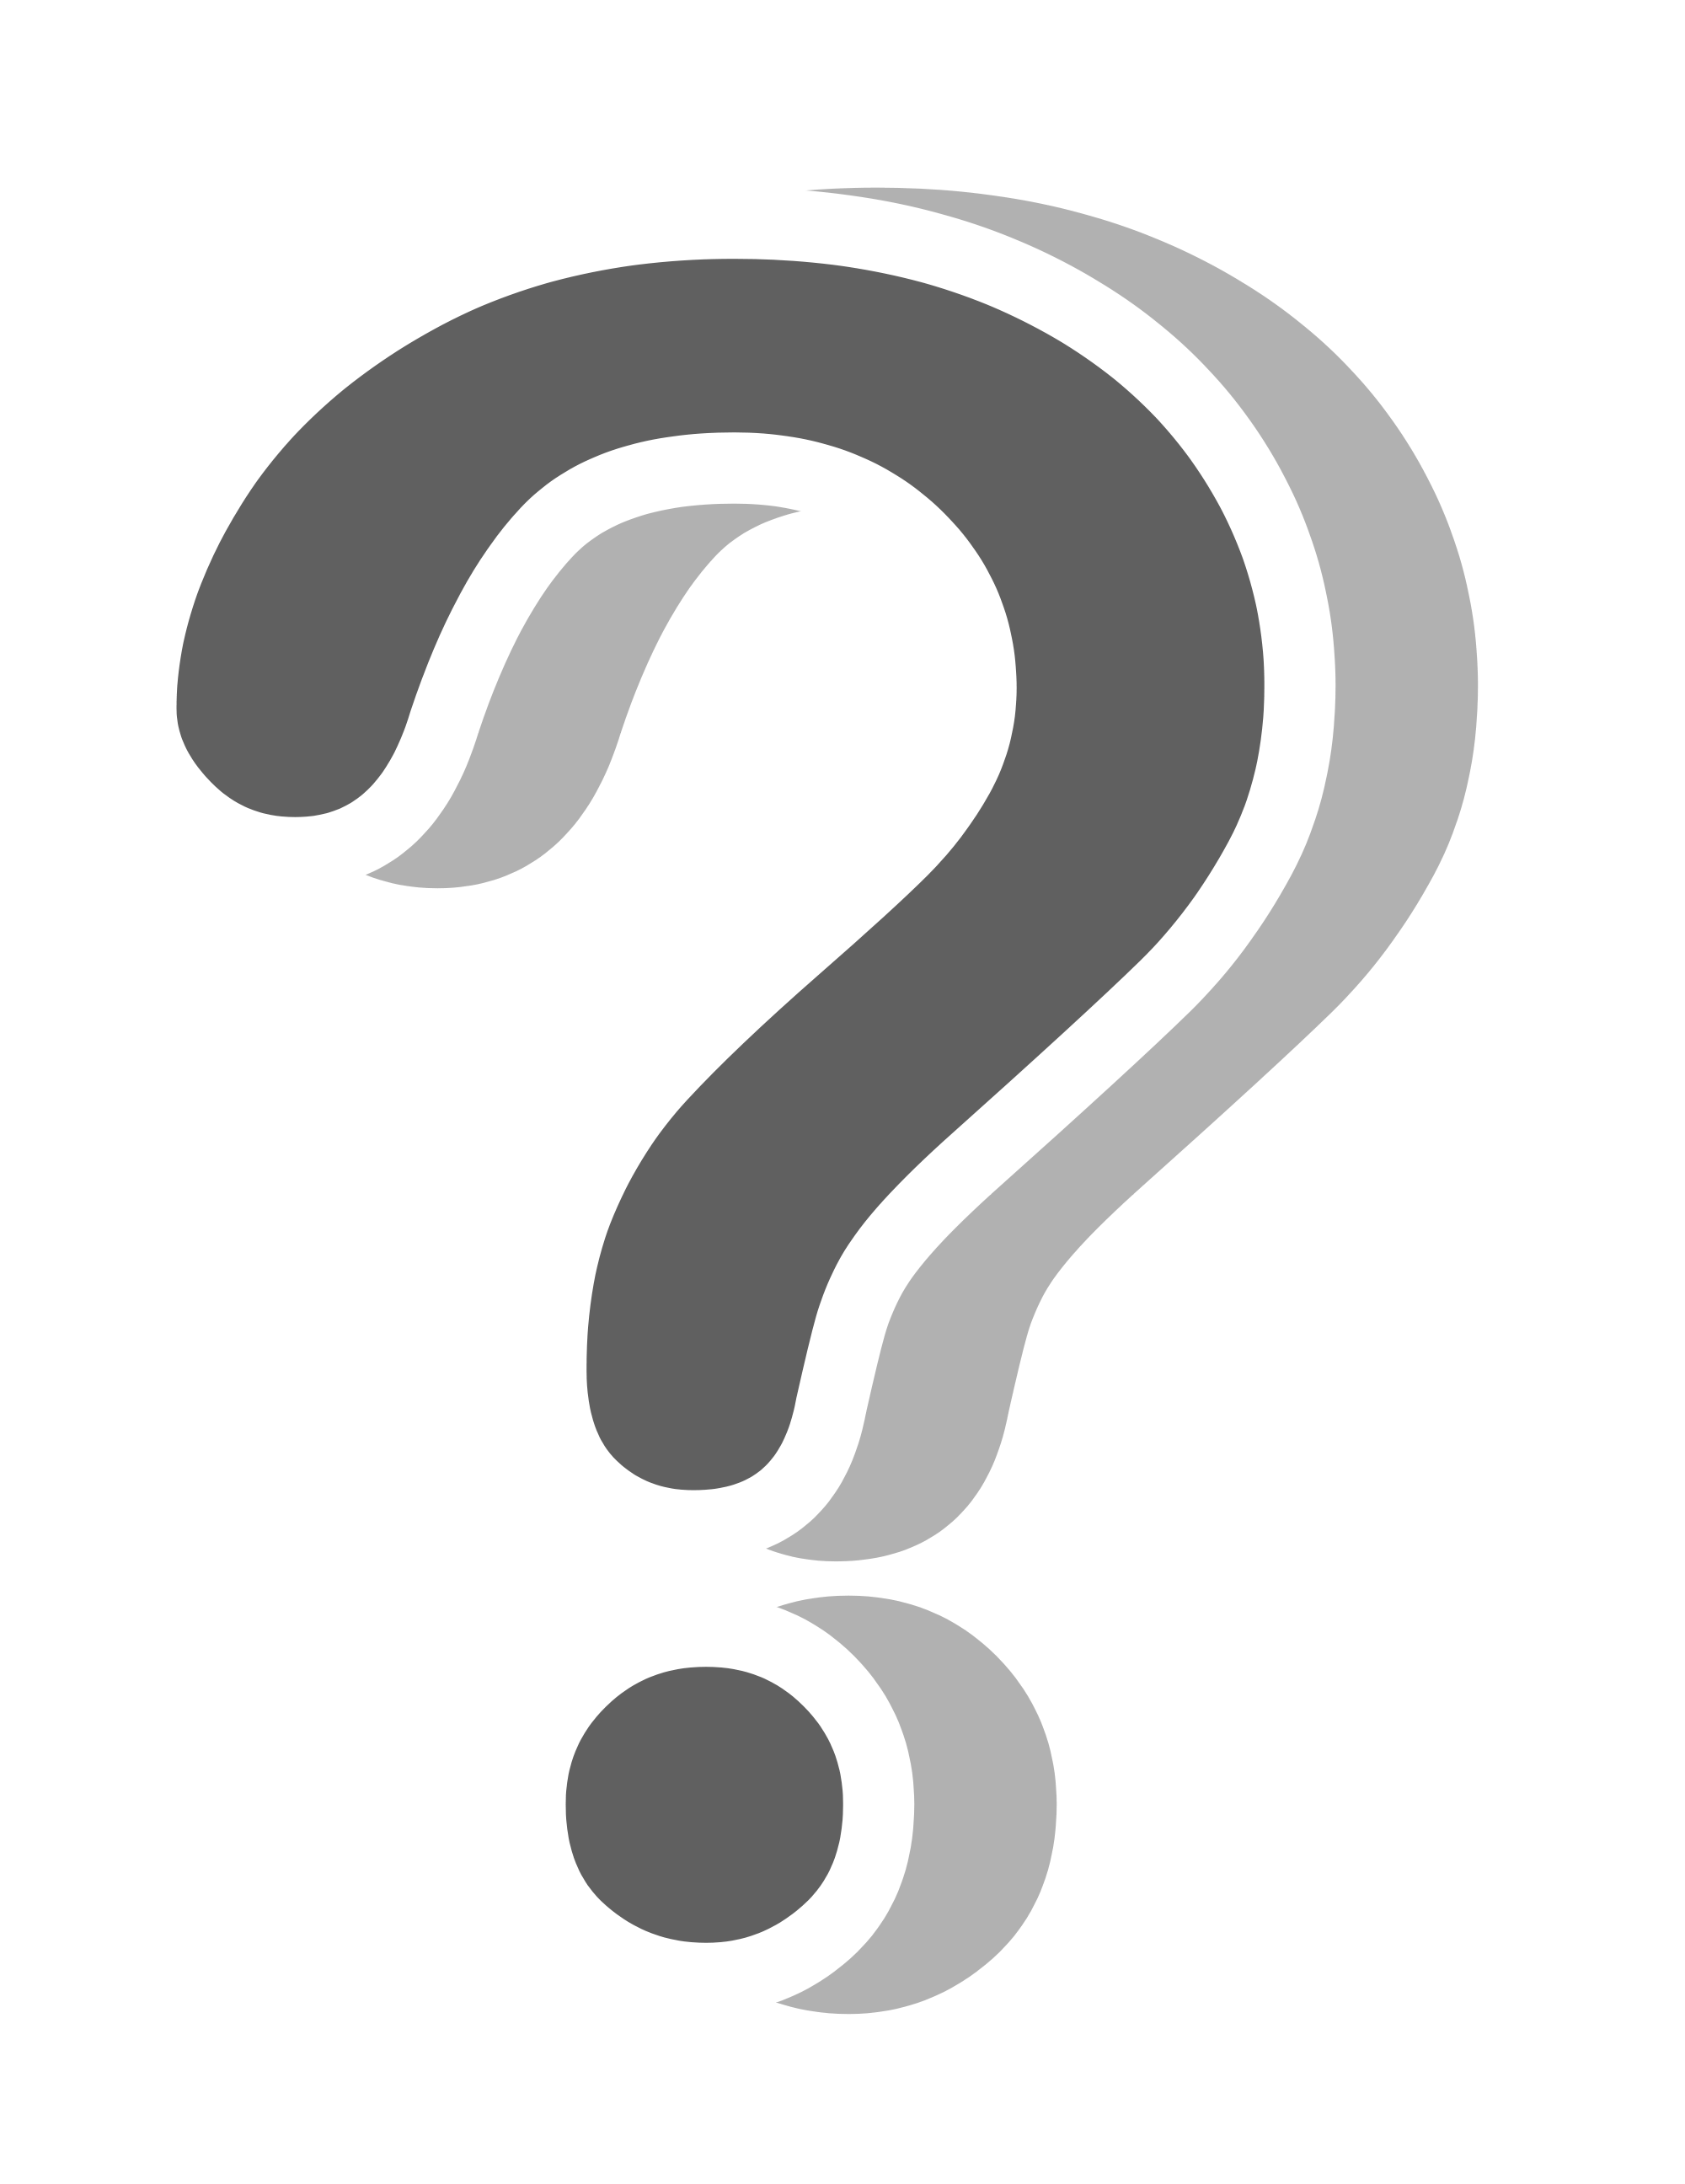 Question mark transparent png. Sticker stickpng download icons